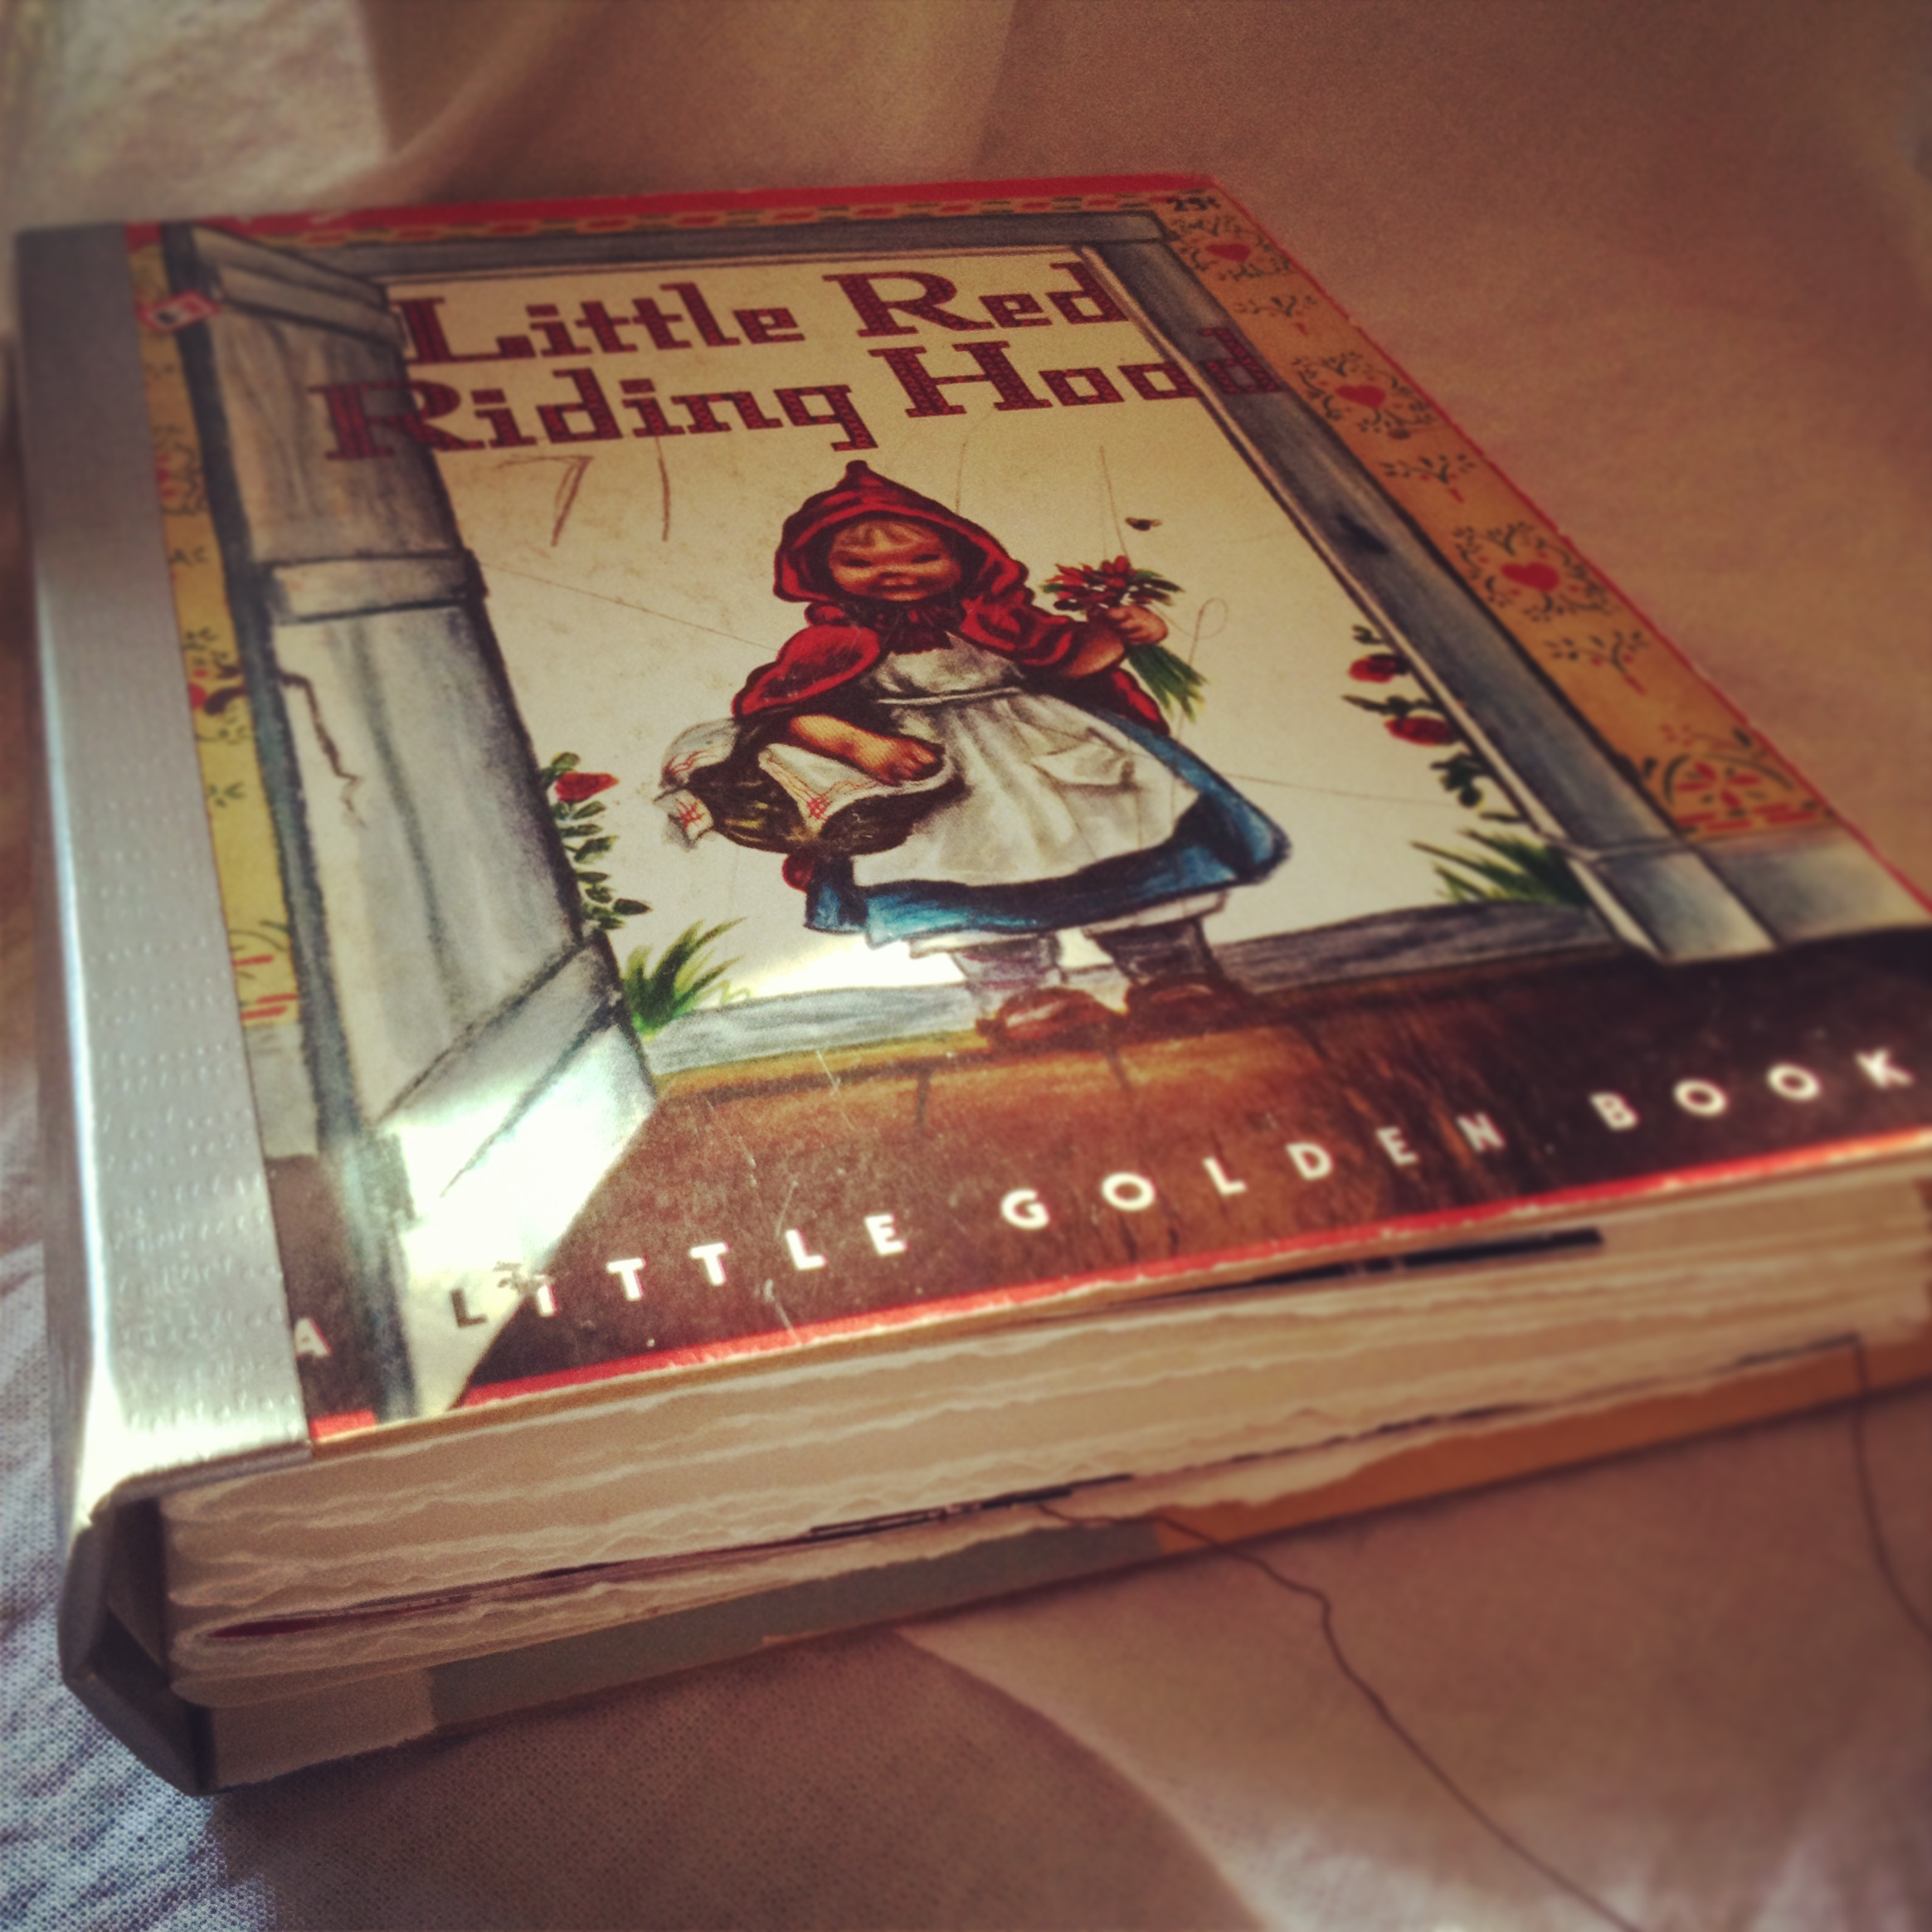 All of these pages are held in a rebound Golden Book, originally purchased for twenty-five cents.